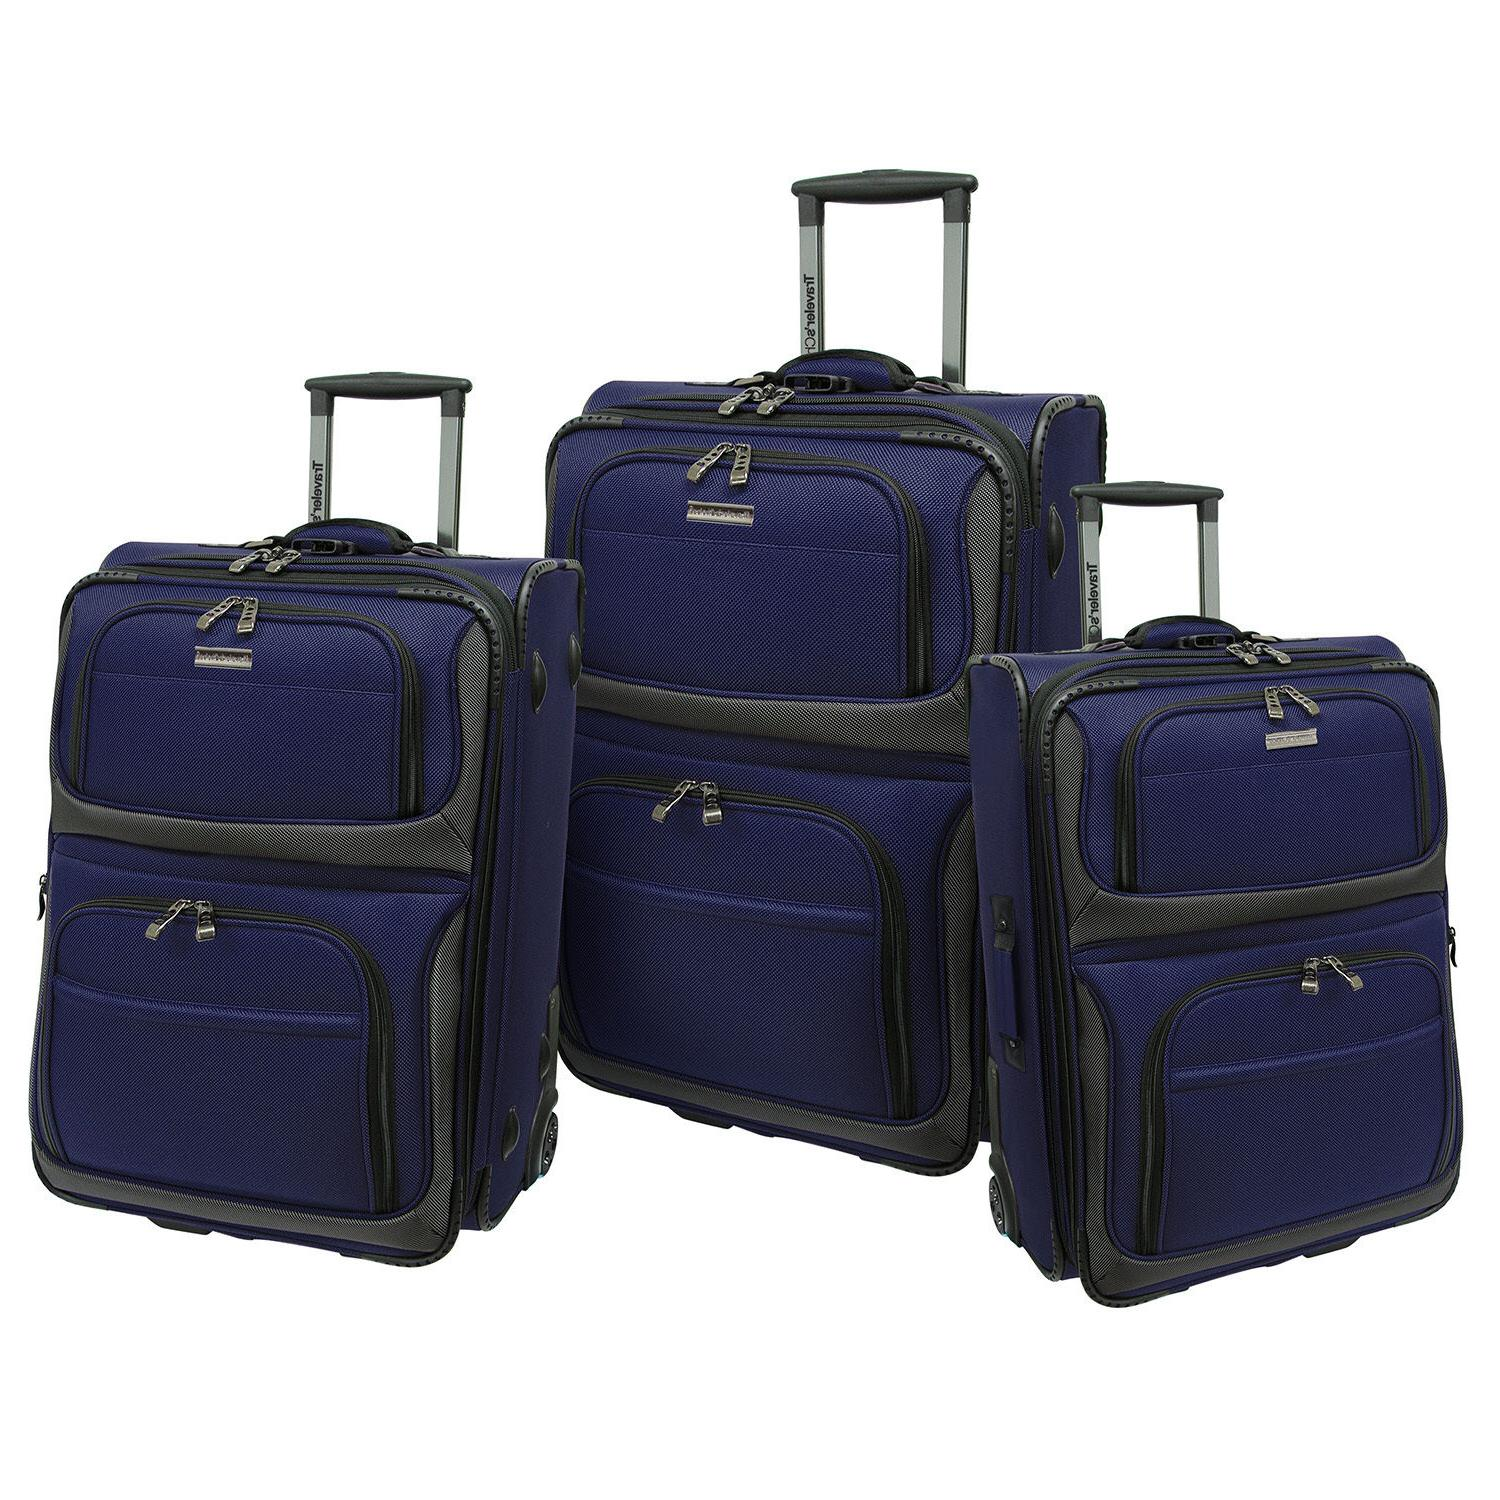 """Traveler's Conventional 22"""" Rugged Carry-On Rolling Luggage"""